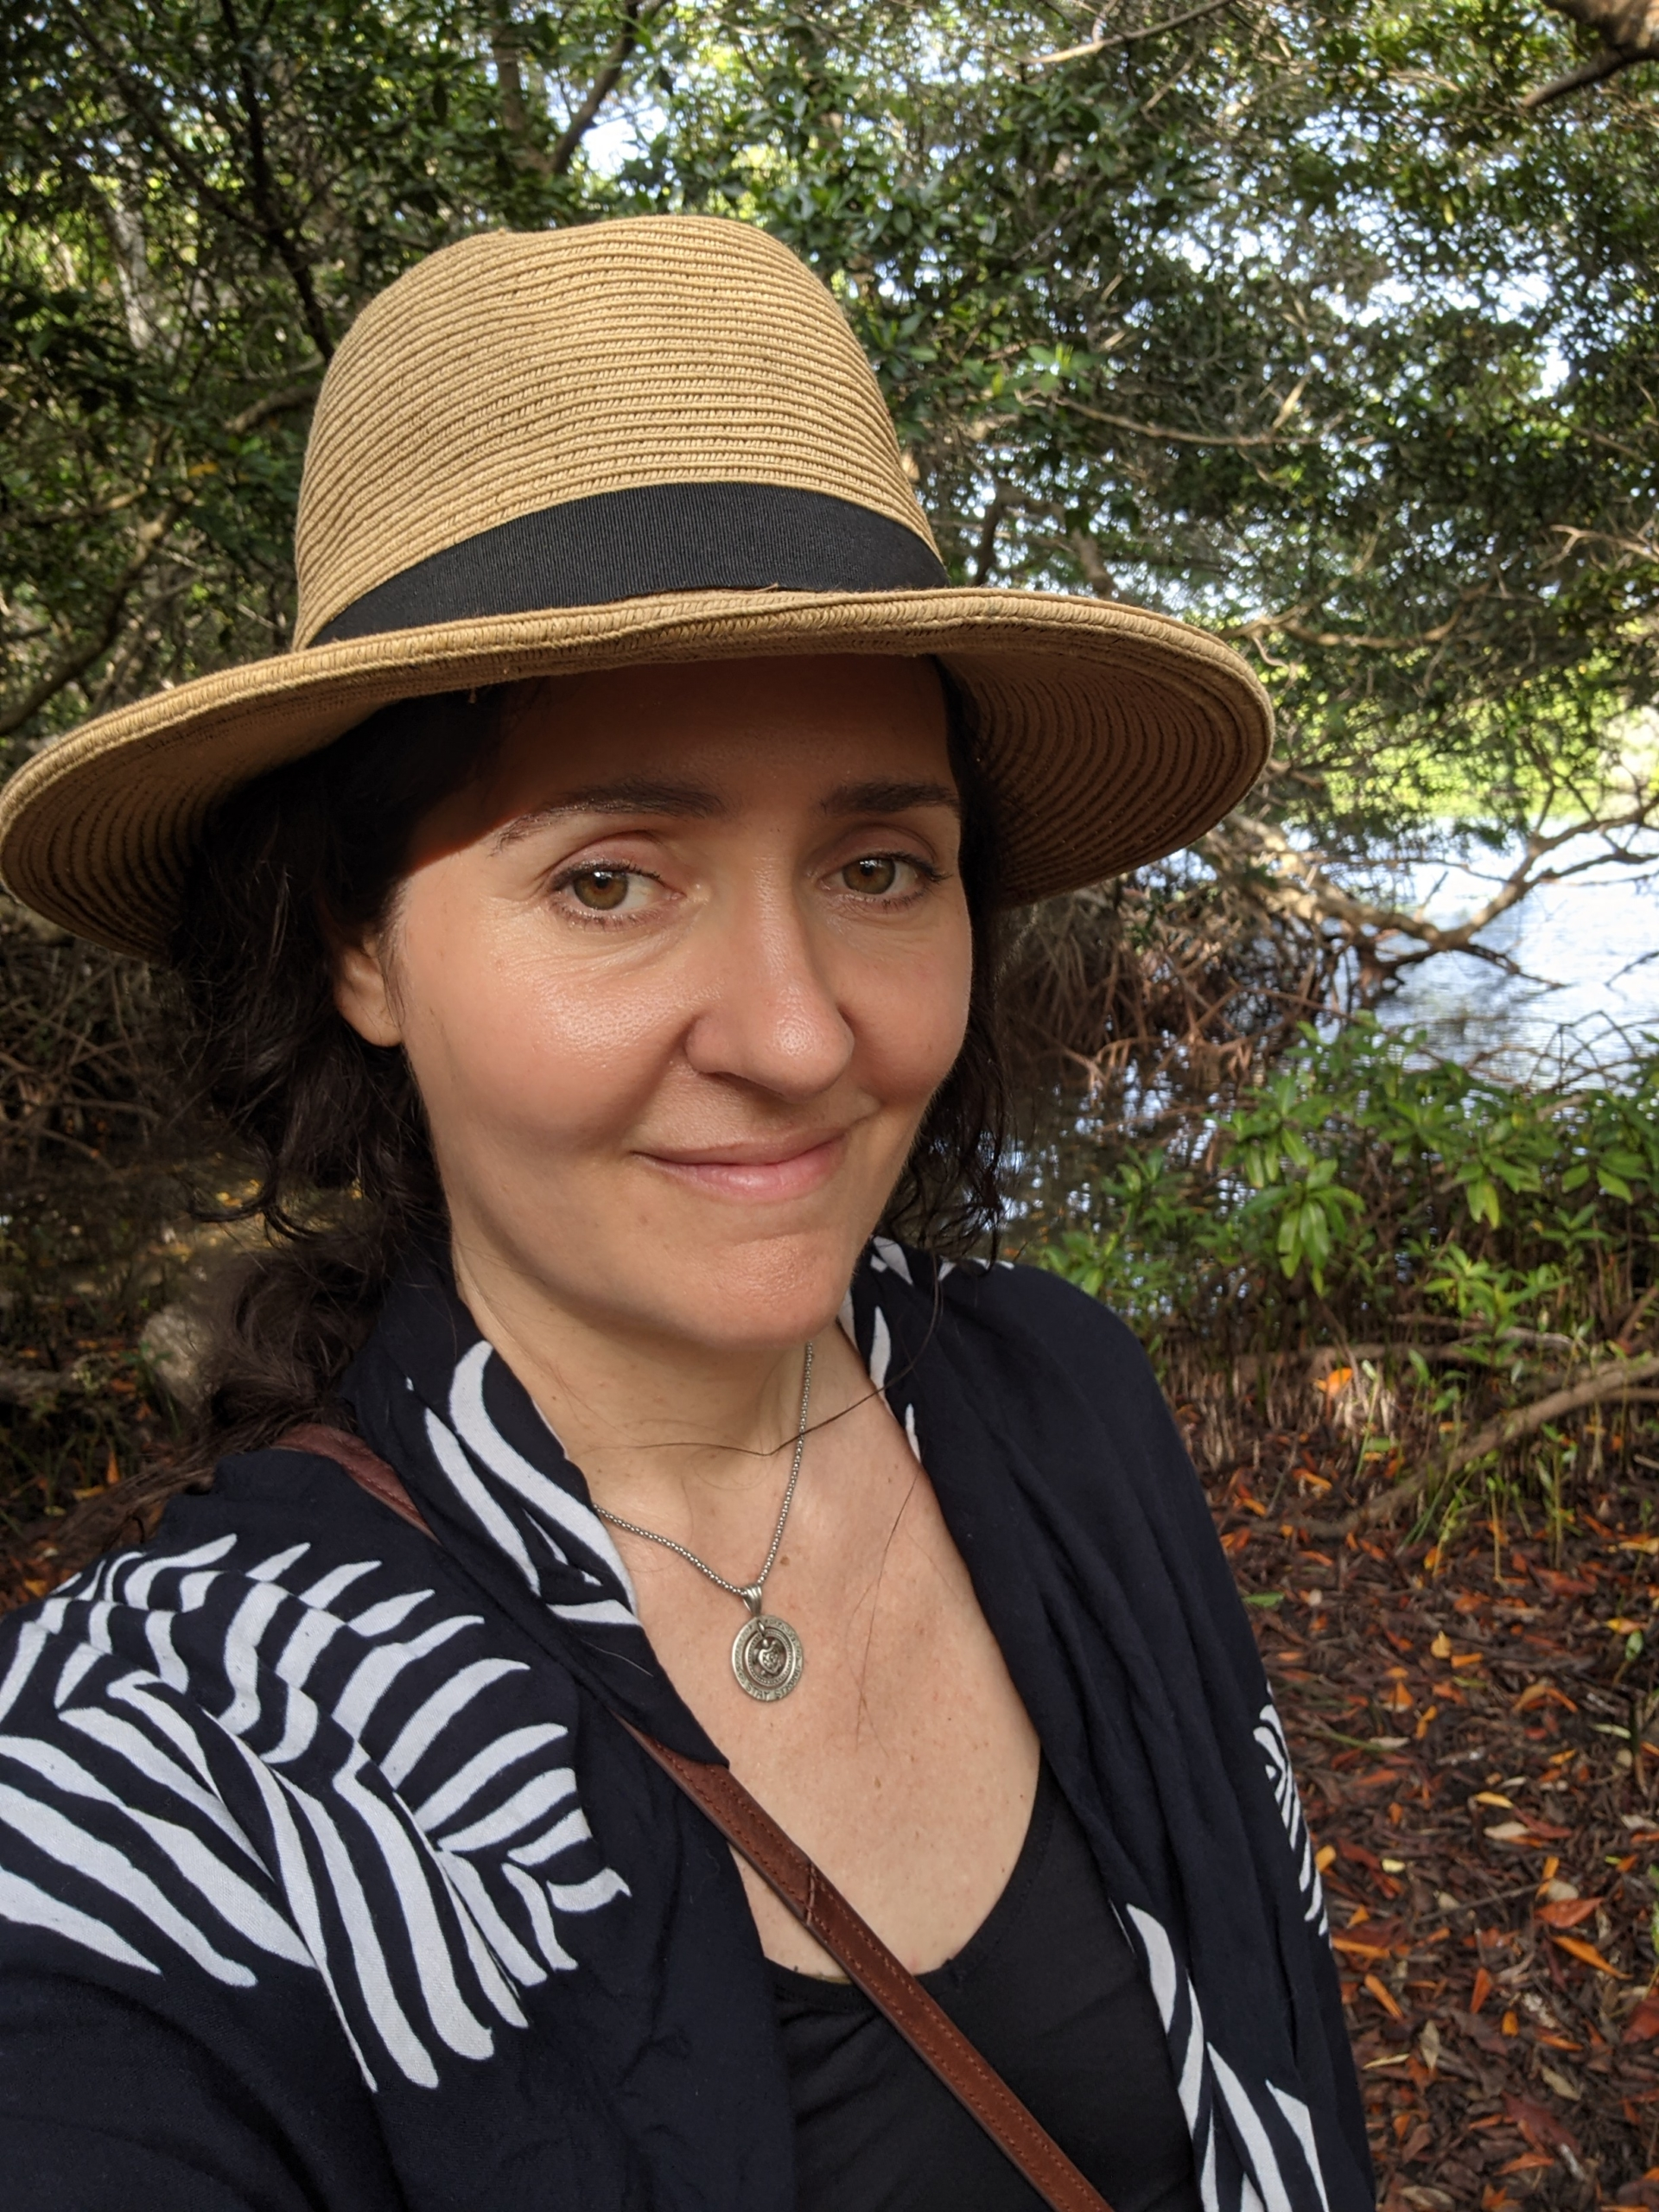 Lori Esposito smiling outside, with trees behind her. She is wearing a straw hat with a wide brim.